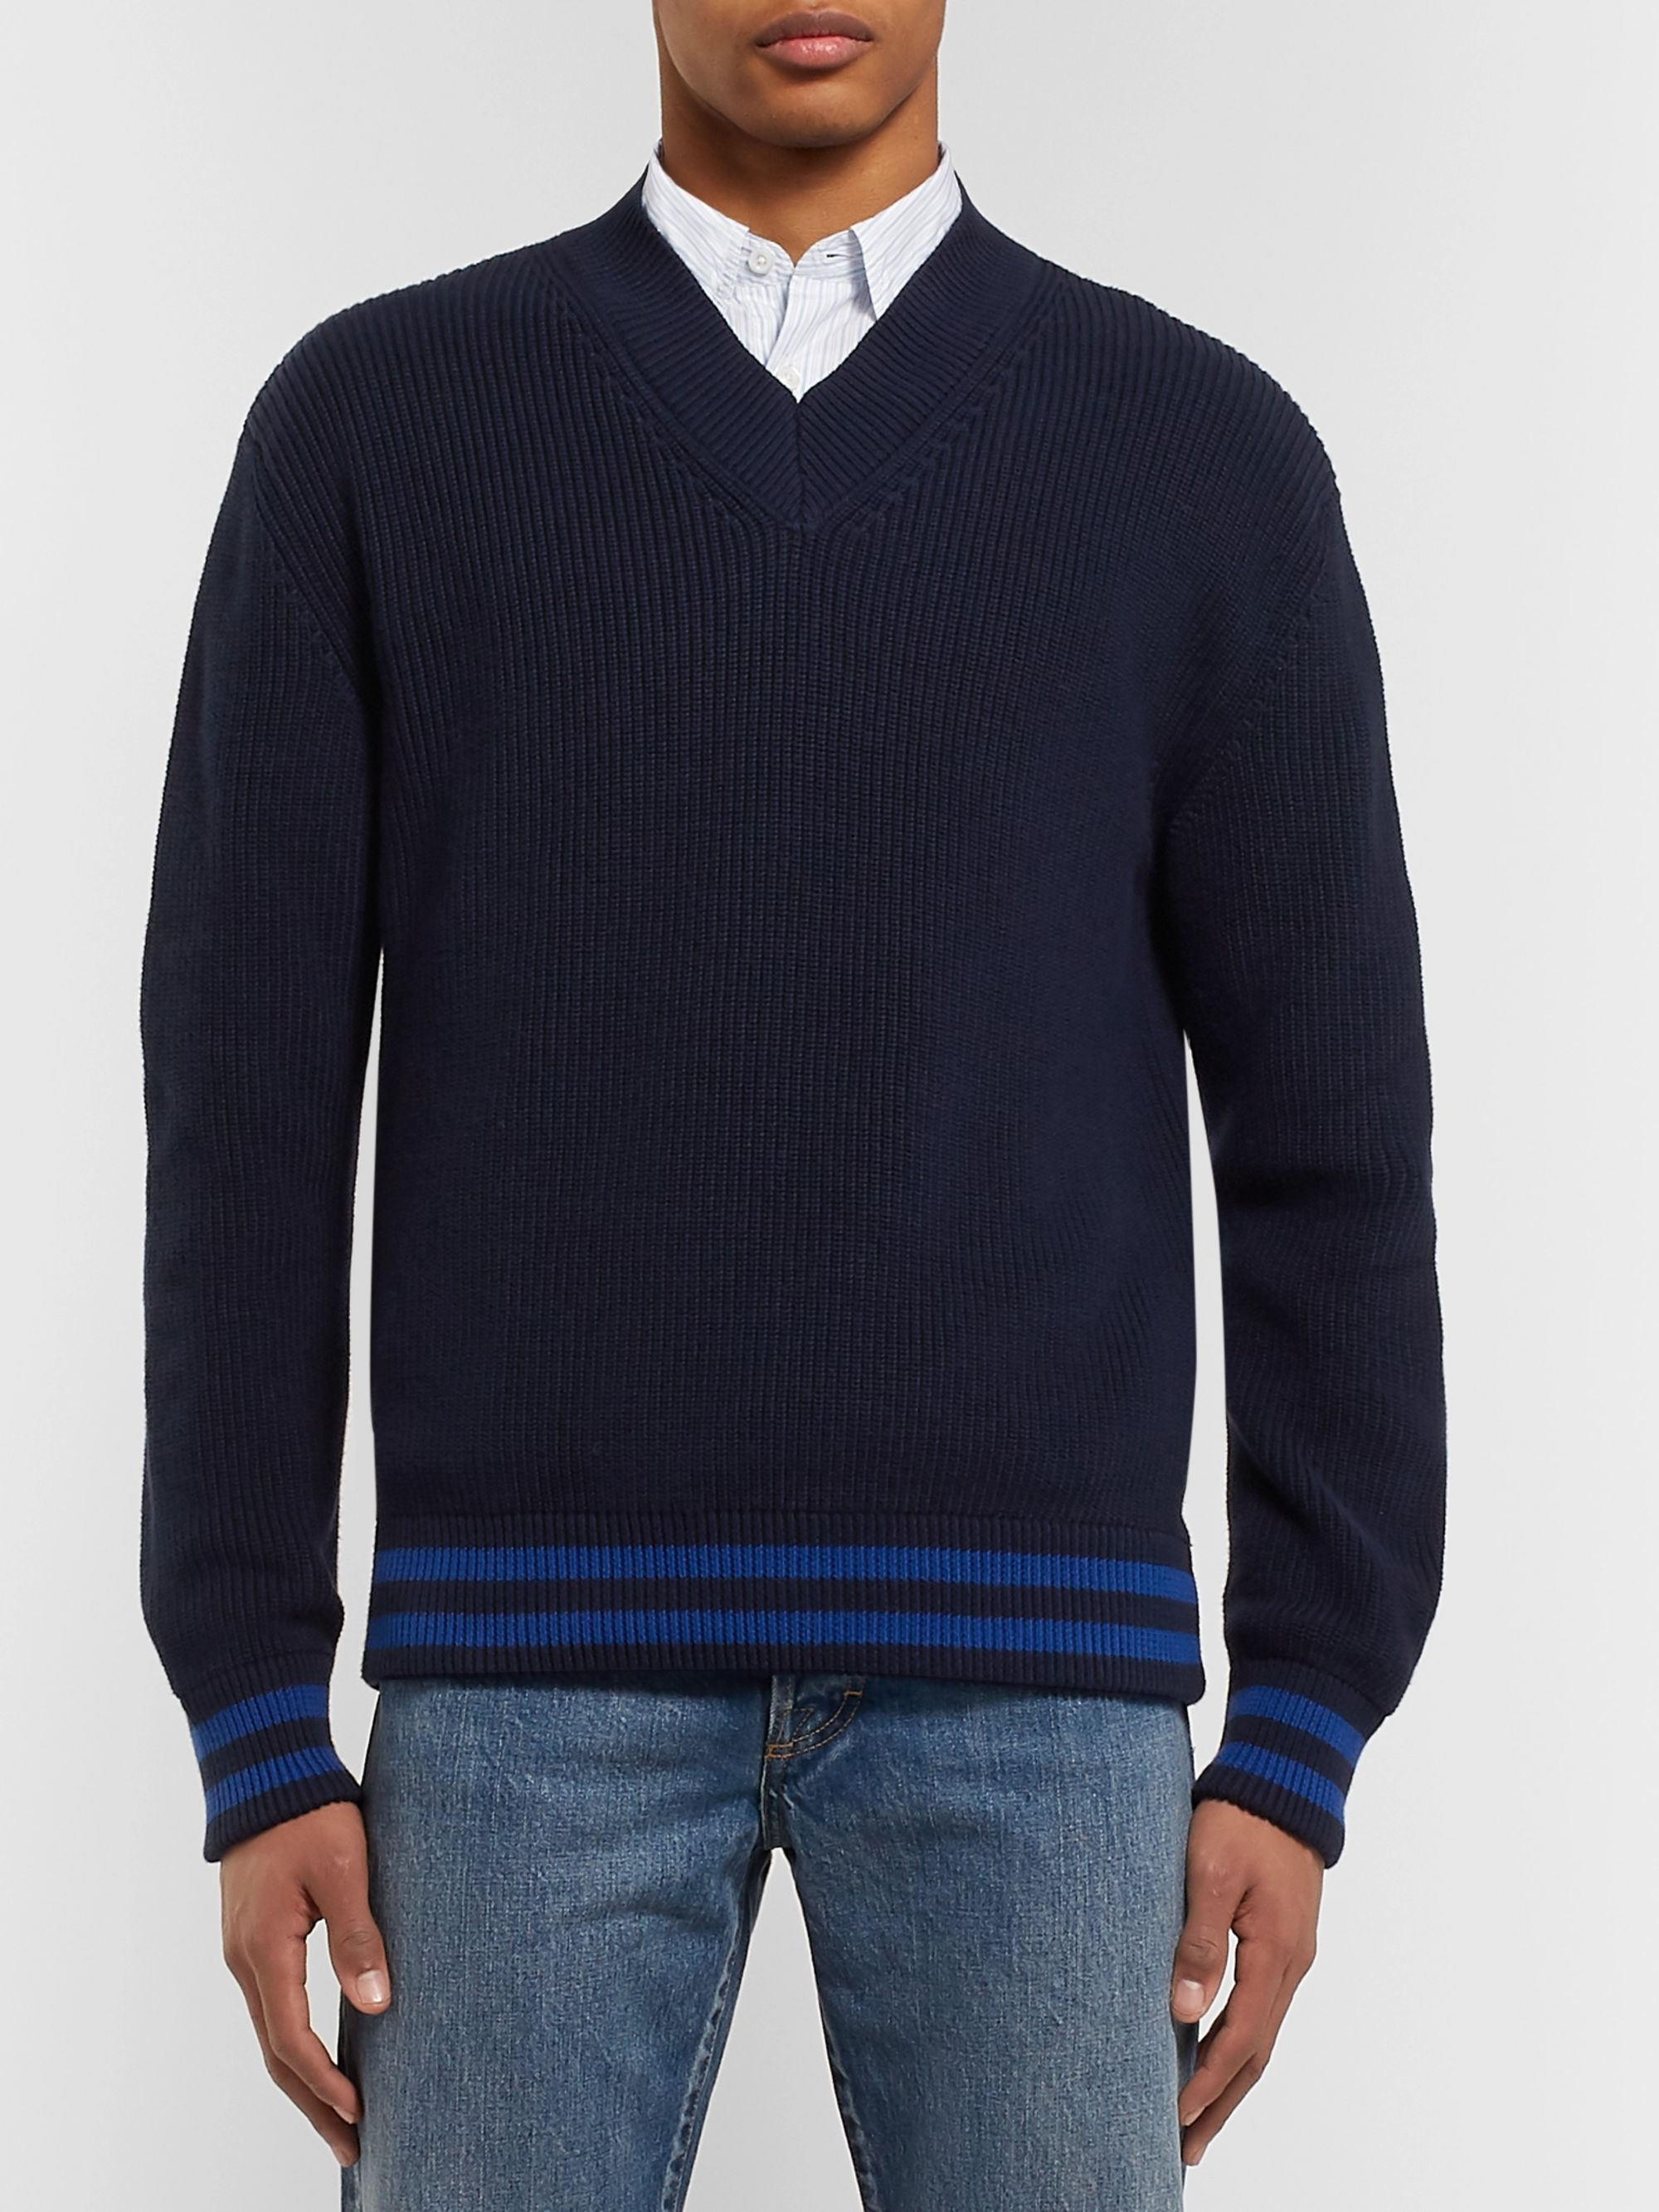 Mr P. Striped Ribbed Cotton Sweater